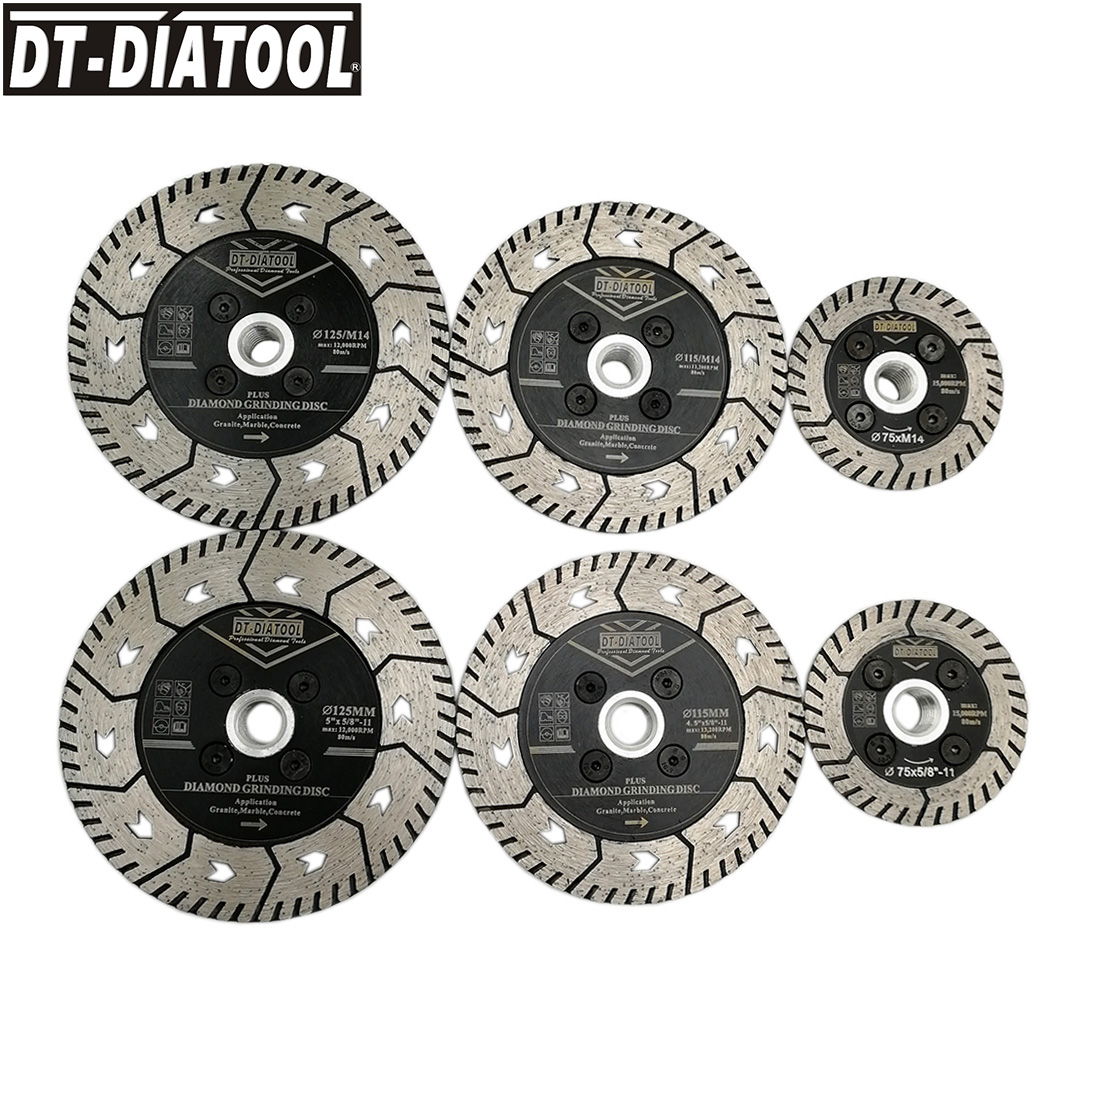 1pc Dia 75/115/125mm Diamond Dual Cutting Wheel Saw Blades Grinding Disc For Grind Sharpen Granite Marble Concrete M14 Or 5/8-11